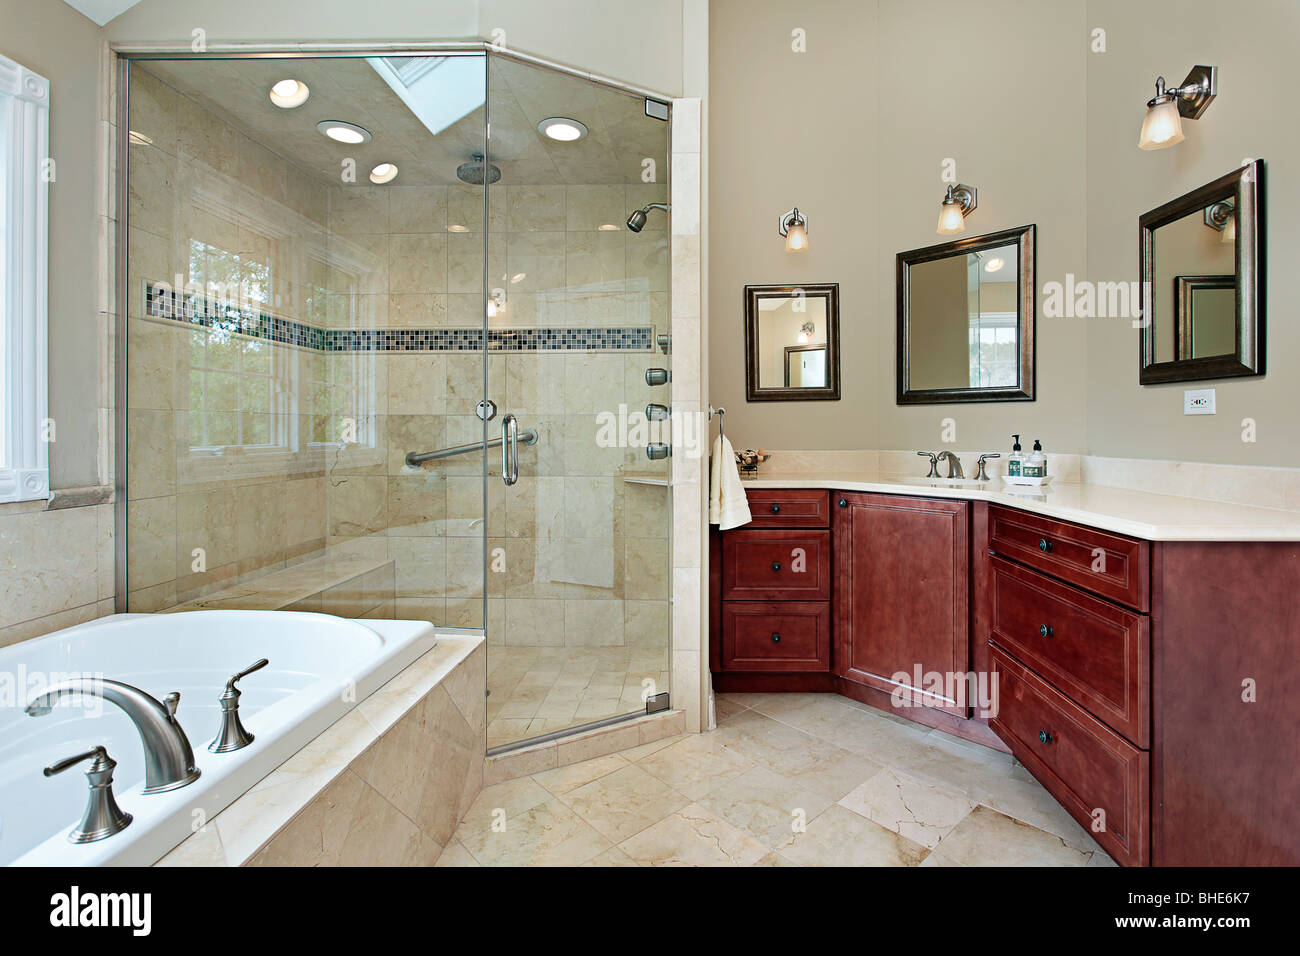 Master bath in luxury home with glass shower - Stock Image